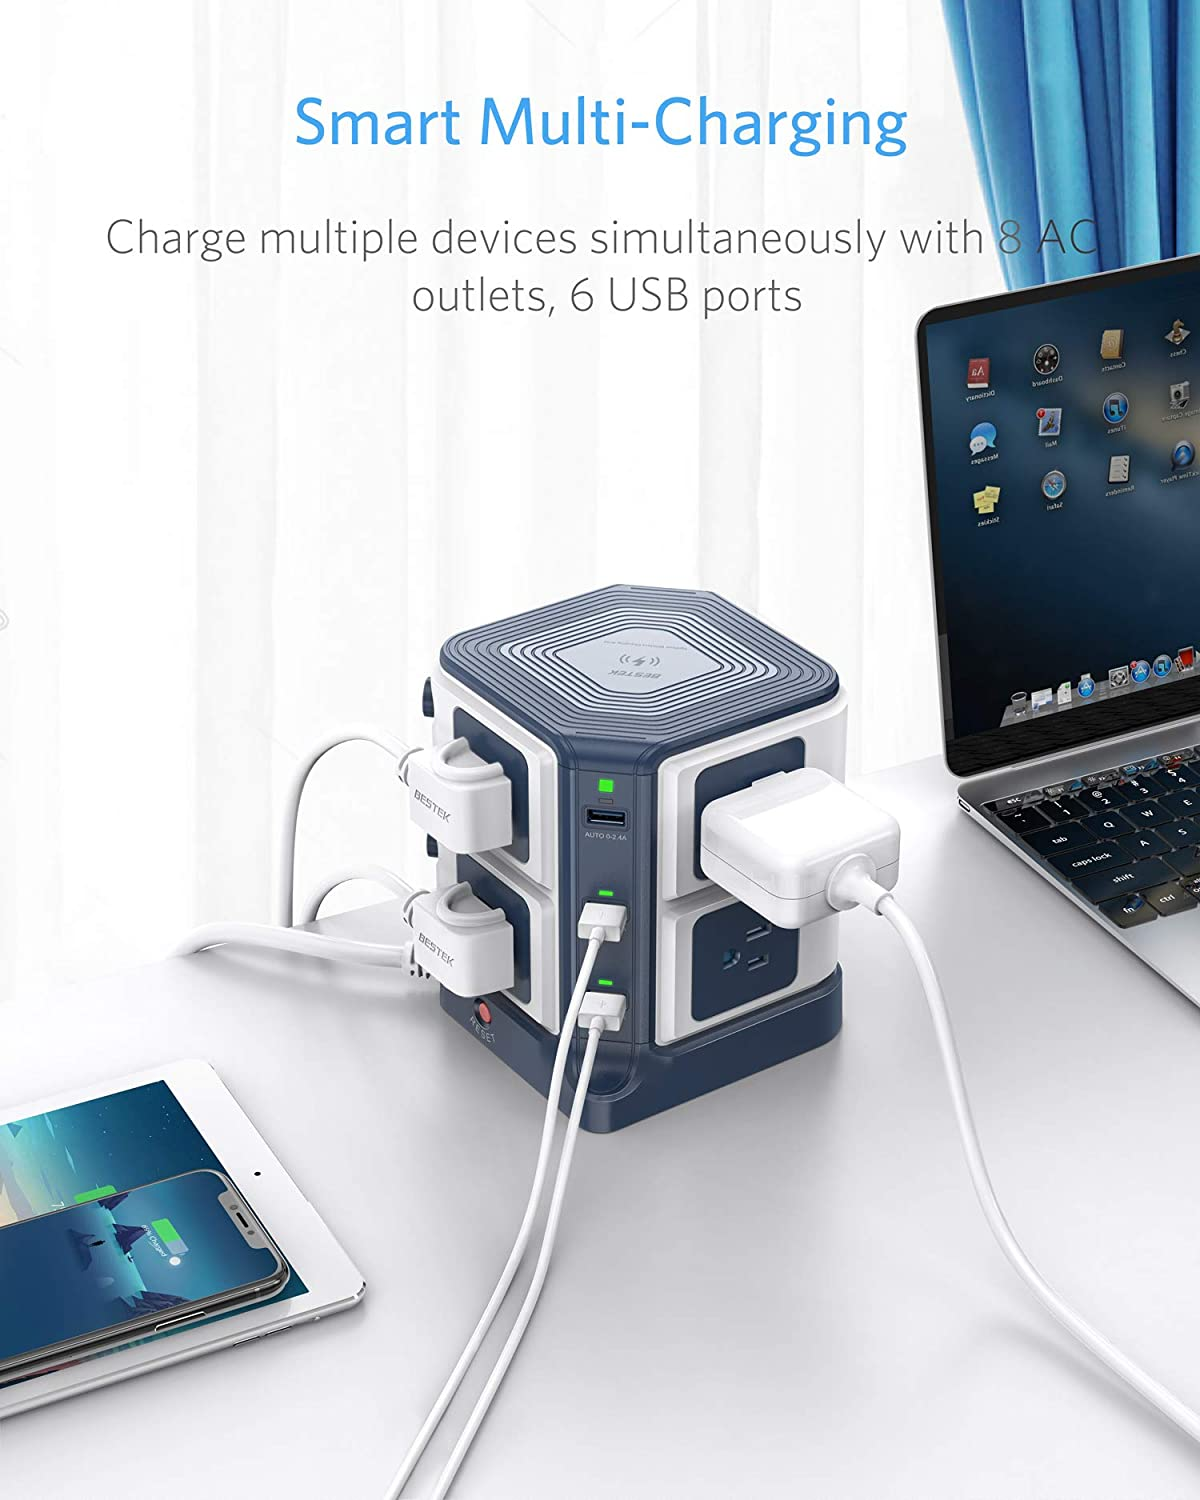 [US Direct] USB Power Strip with Wireless Charger BESTEK 8-Outlet Surge Protector and 40W 6-Port USB Charging Dock Station,1500 Joules,ETL Listed,Dorm Room Accessories 19*14*16